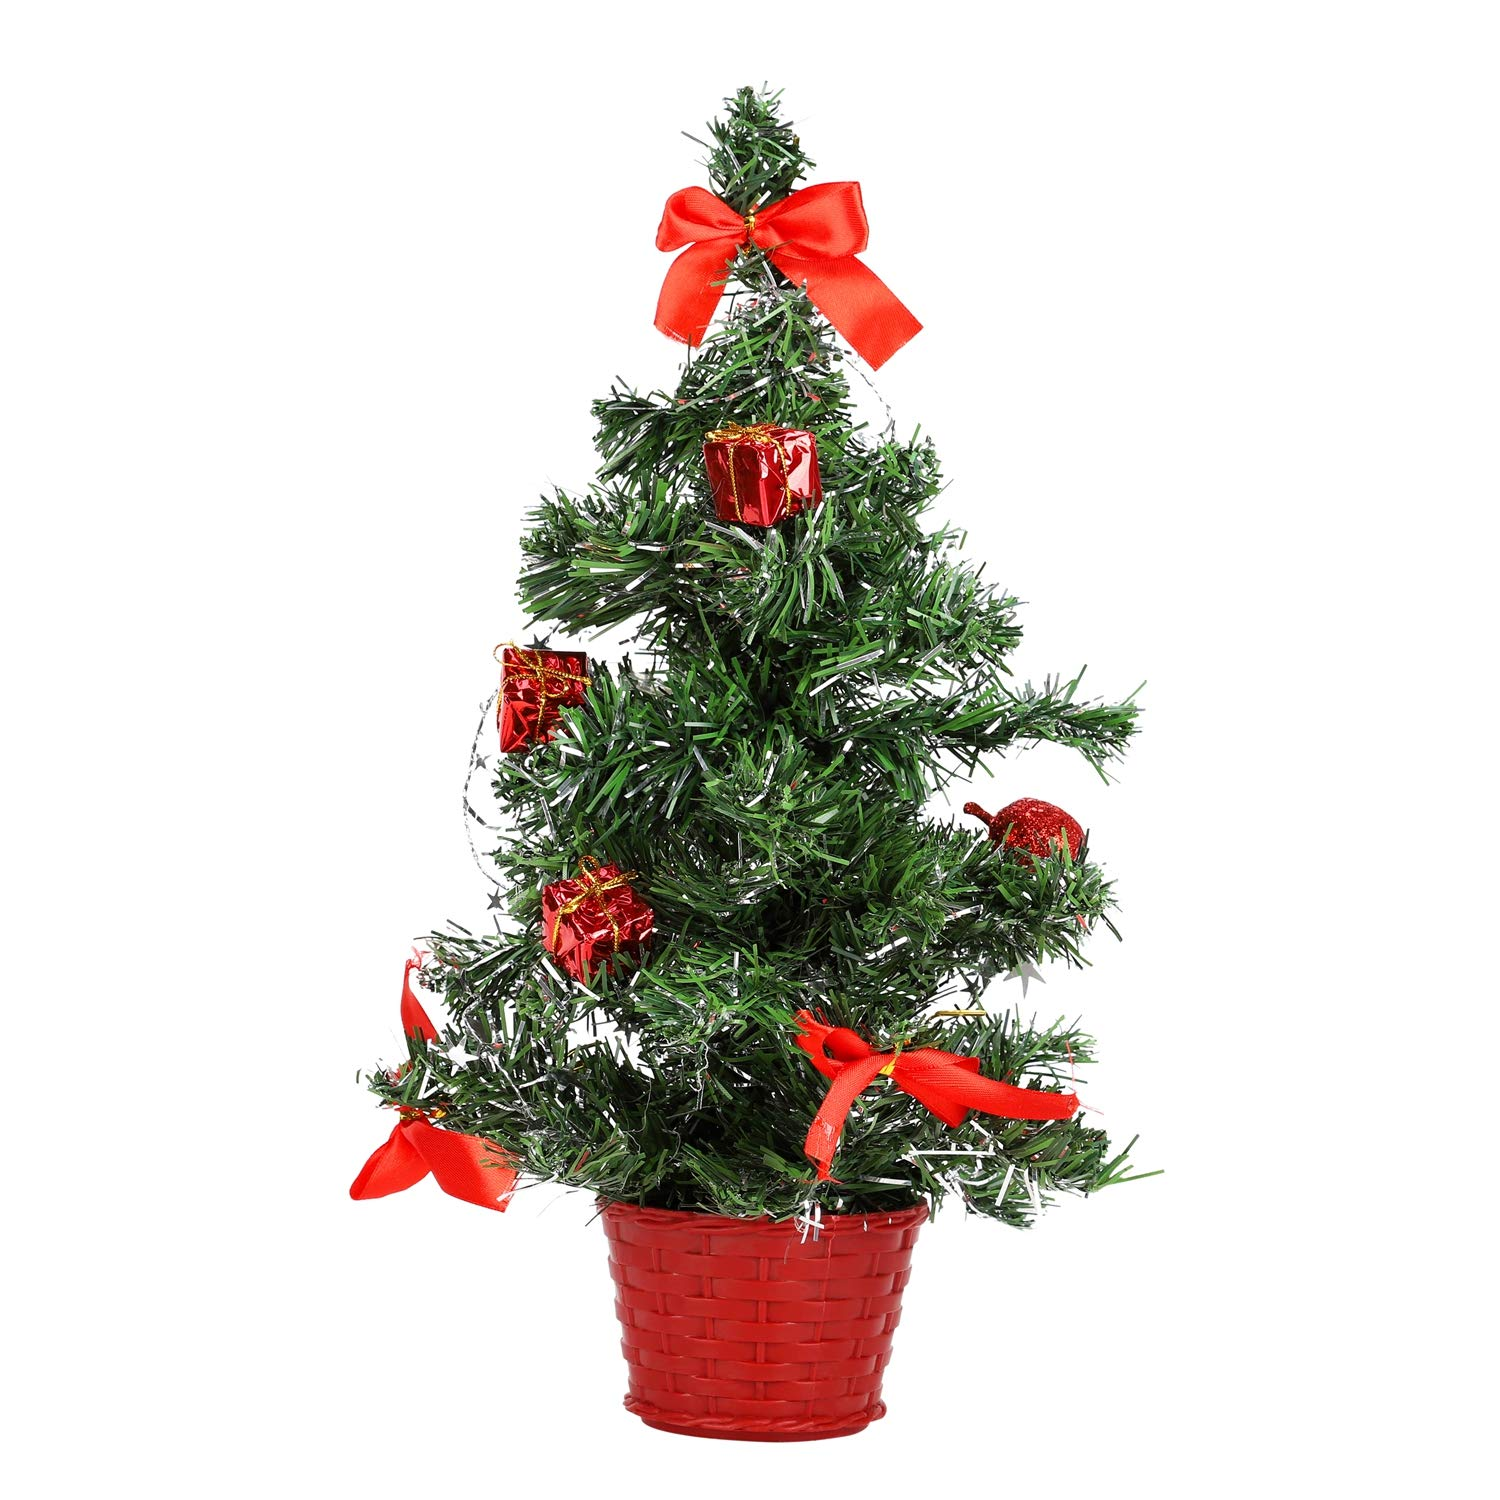 Balight Tabletop Christmas Tree, Mini Artificial Christmas Tree with Red Accessories for Xmas Indoor Outdoor Home Ornaments Decor